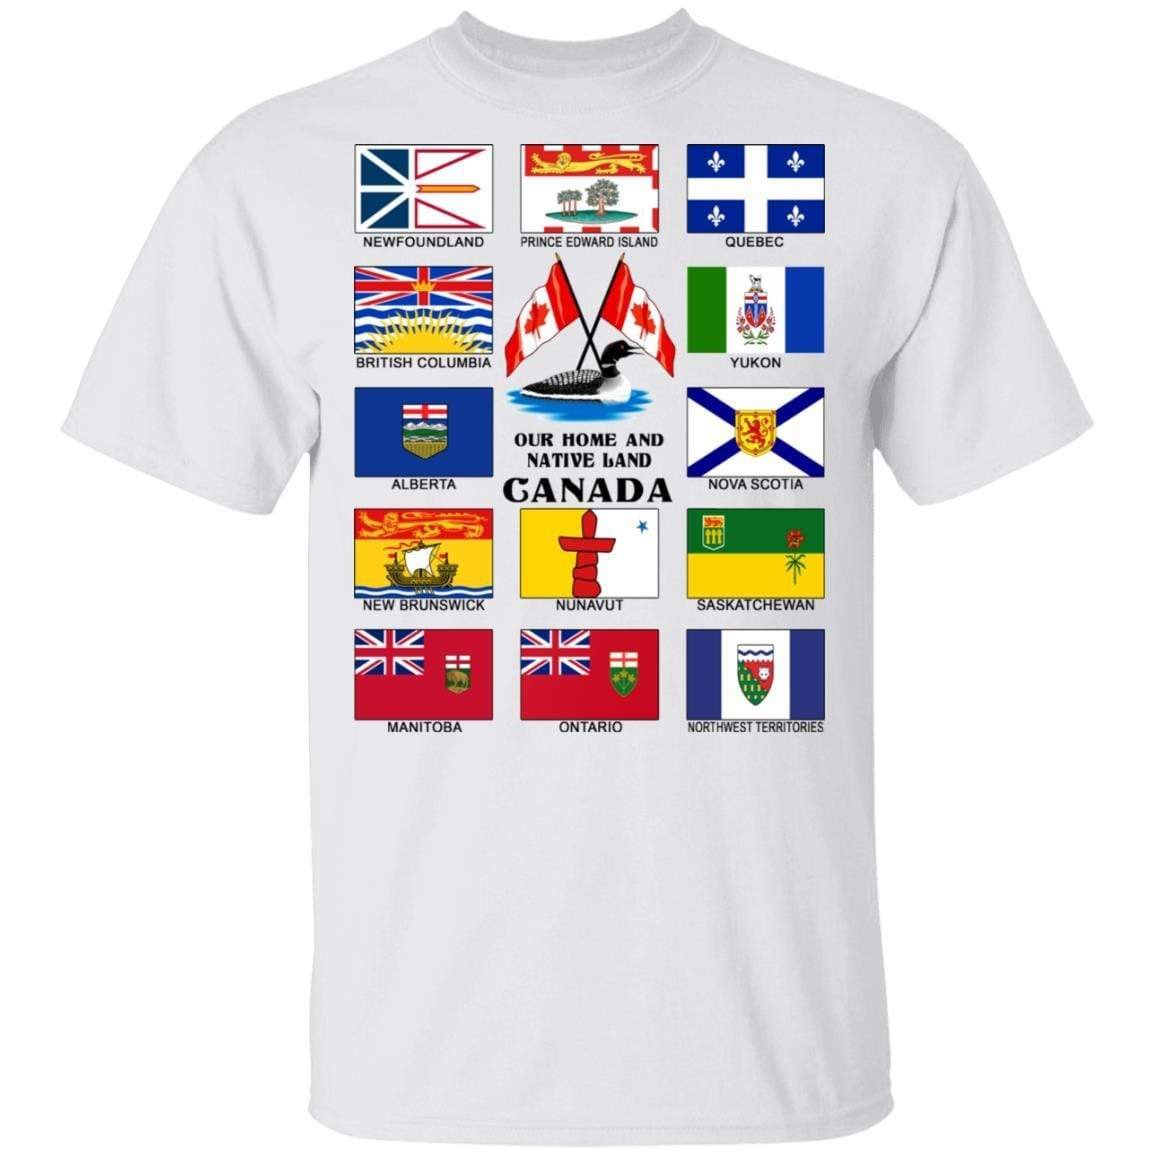 Our Home And Native Land Canada T-Shirts, Hoodies 1049-9974-86894825-48300 - Tee Ript